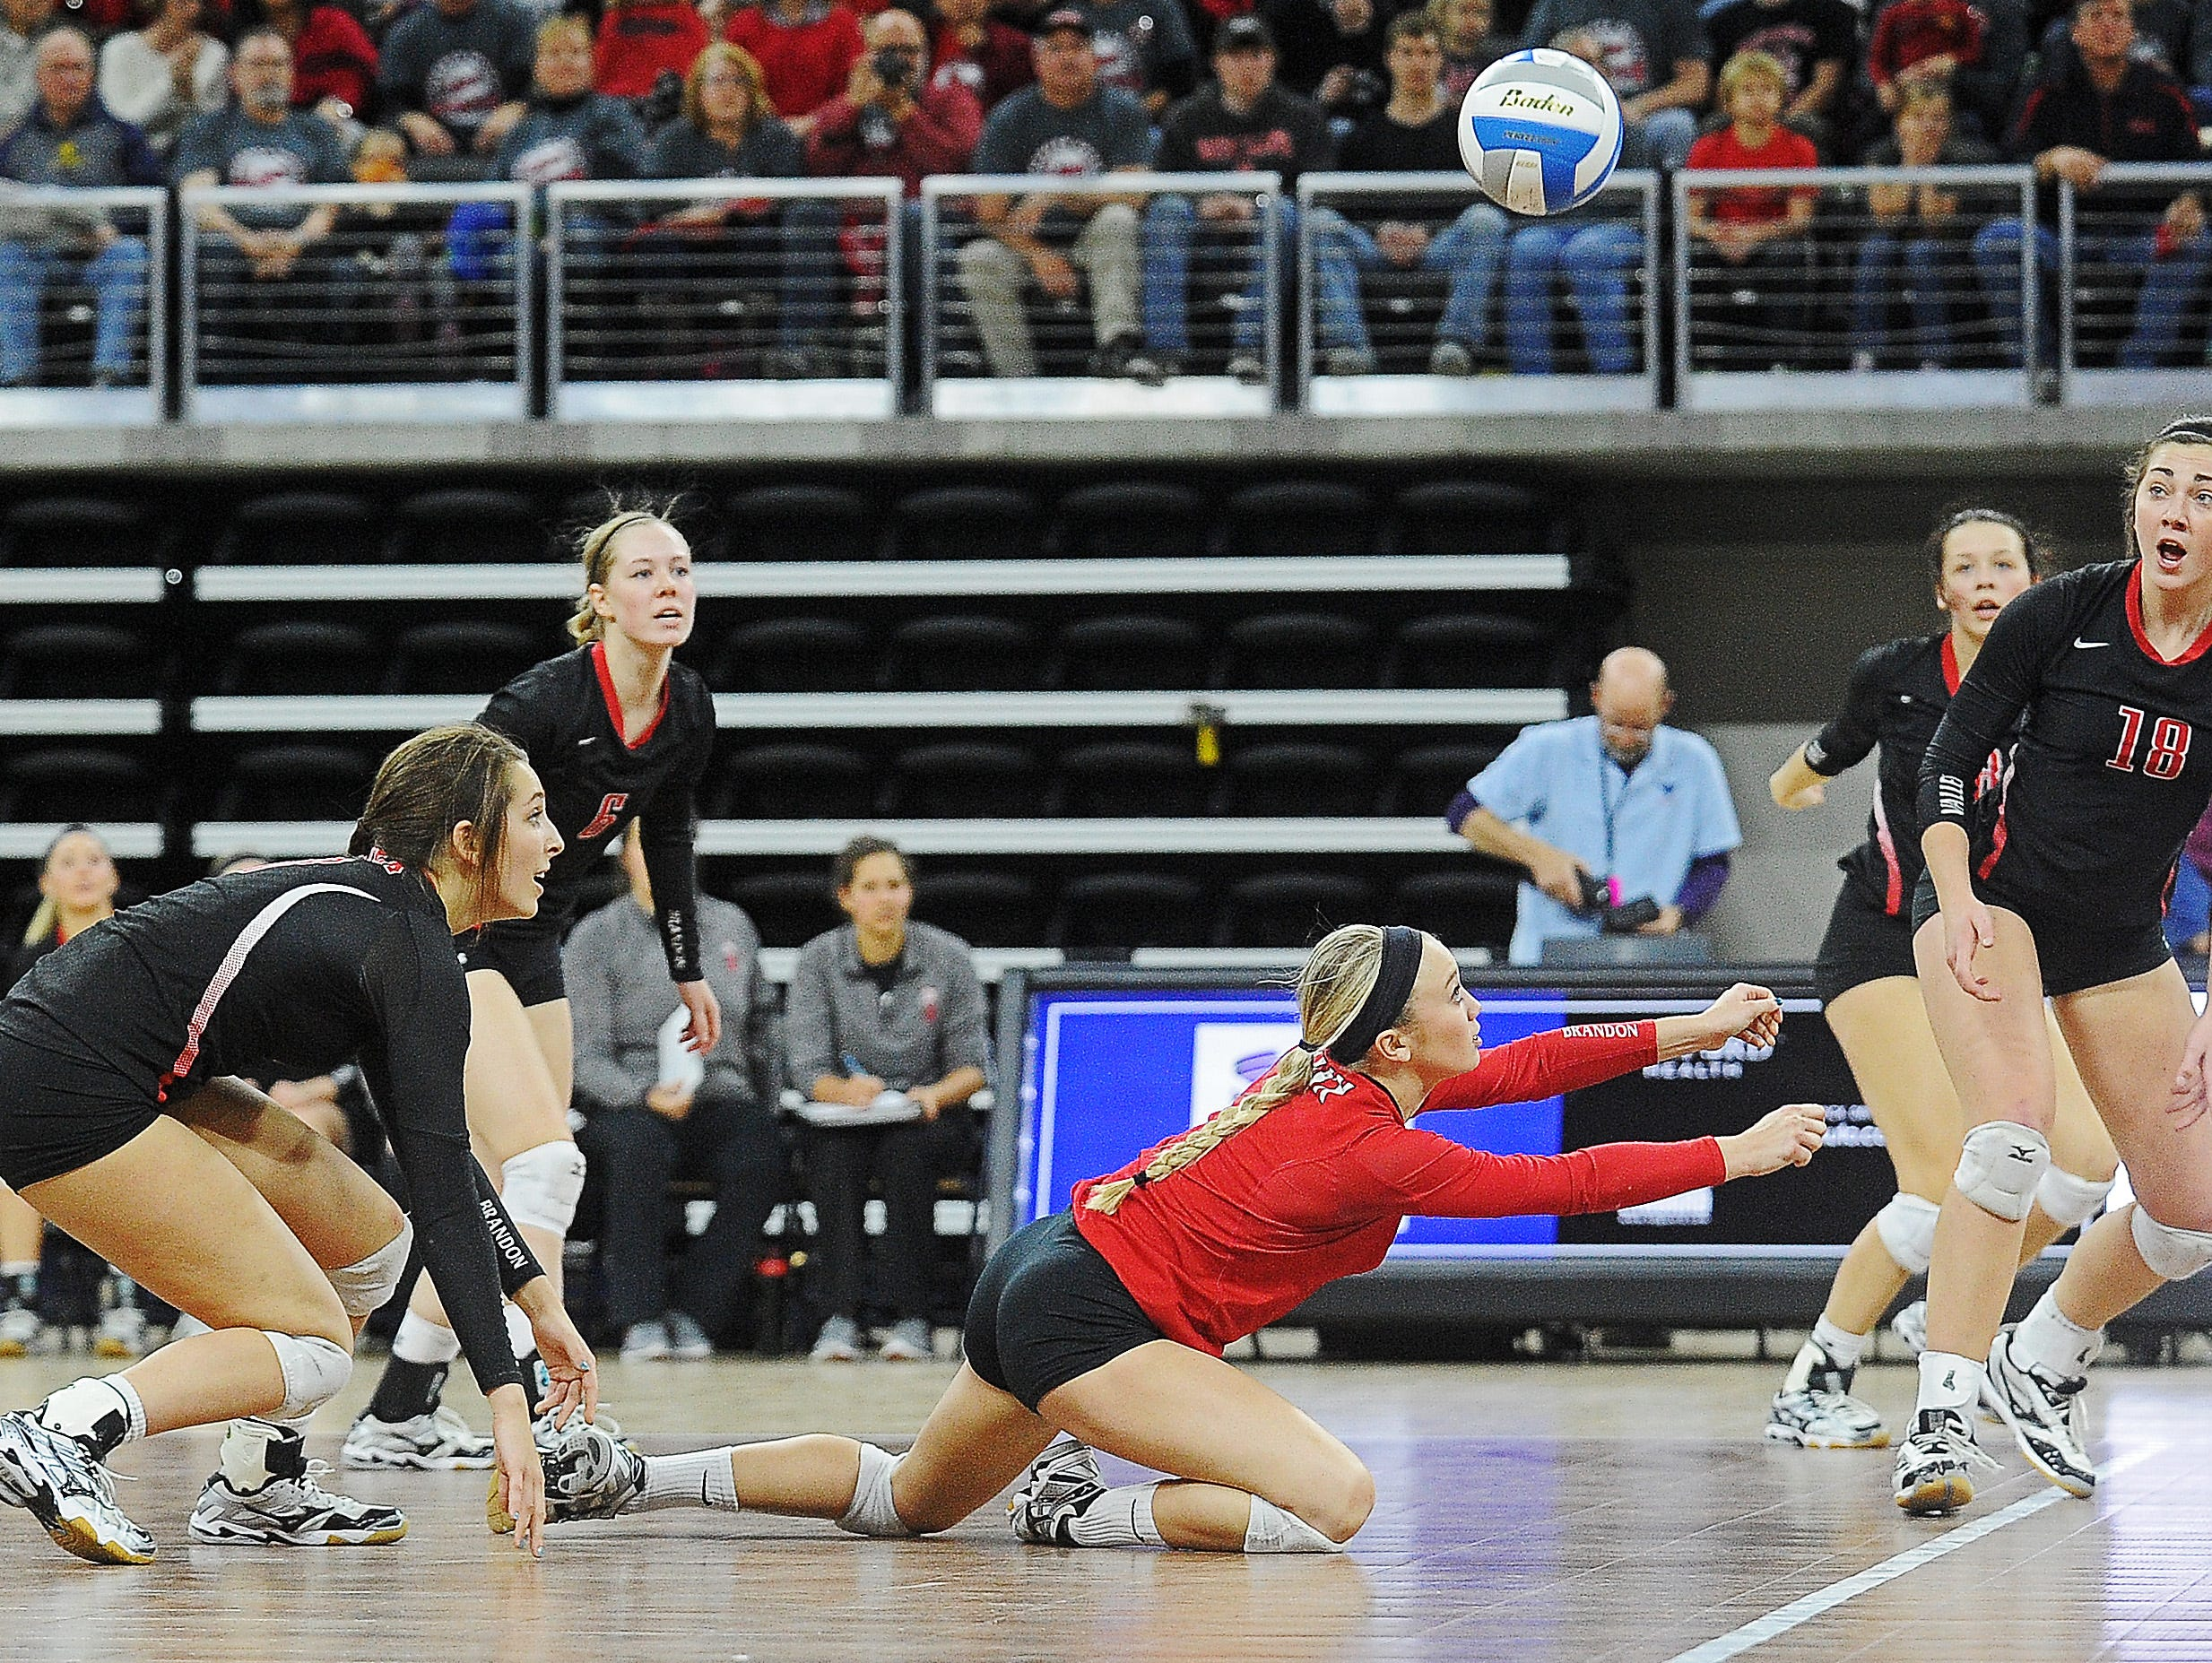 Brandon Valley's Taylor Thorson (1) dives for the ball during the South Dakota State High School Class AA championship volleyball match against Aberdeen Central Saturday, Nov. 21, 2015, at the Denny Sanford Premier Center in Sioux Falls.